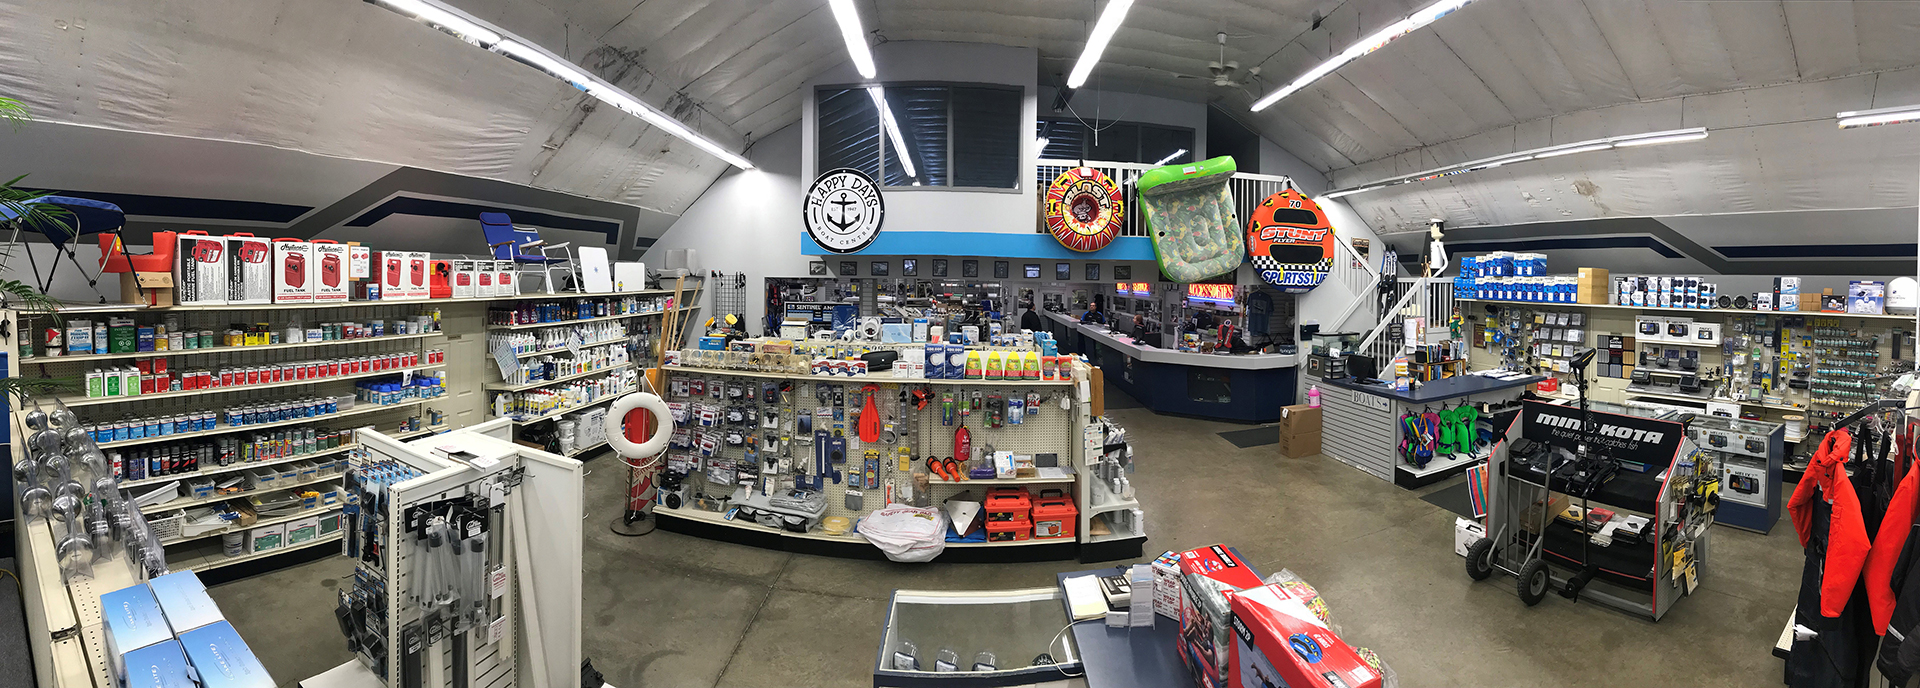 Image of inside the ship store